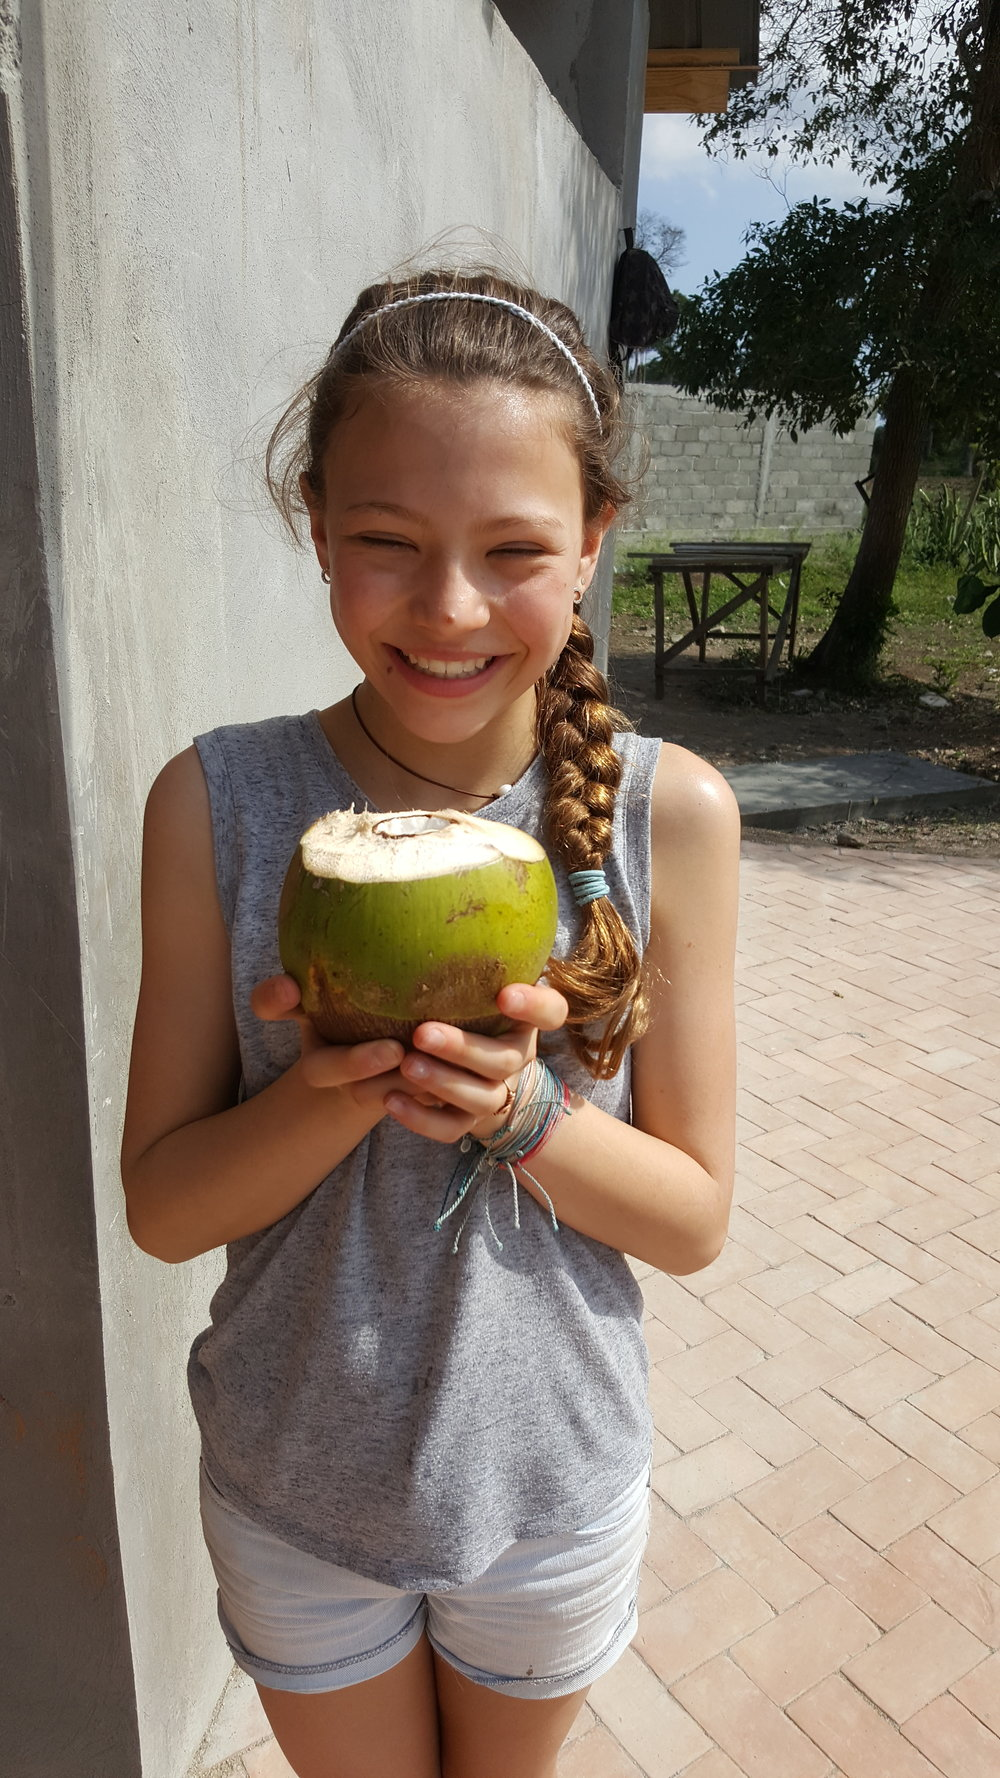 fresh coconut - yum!